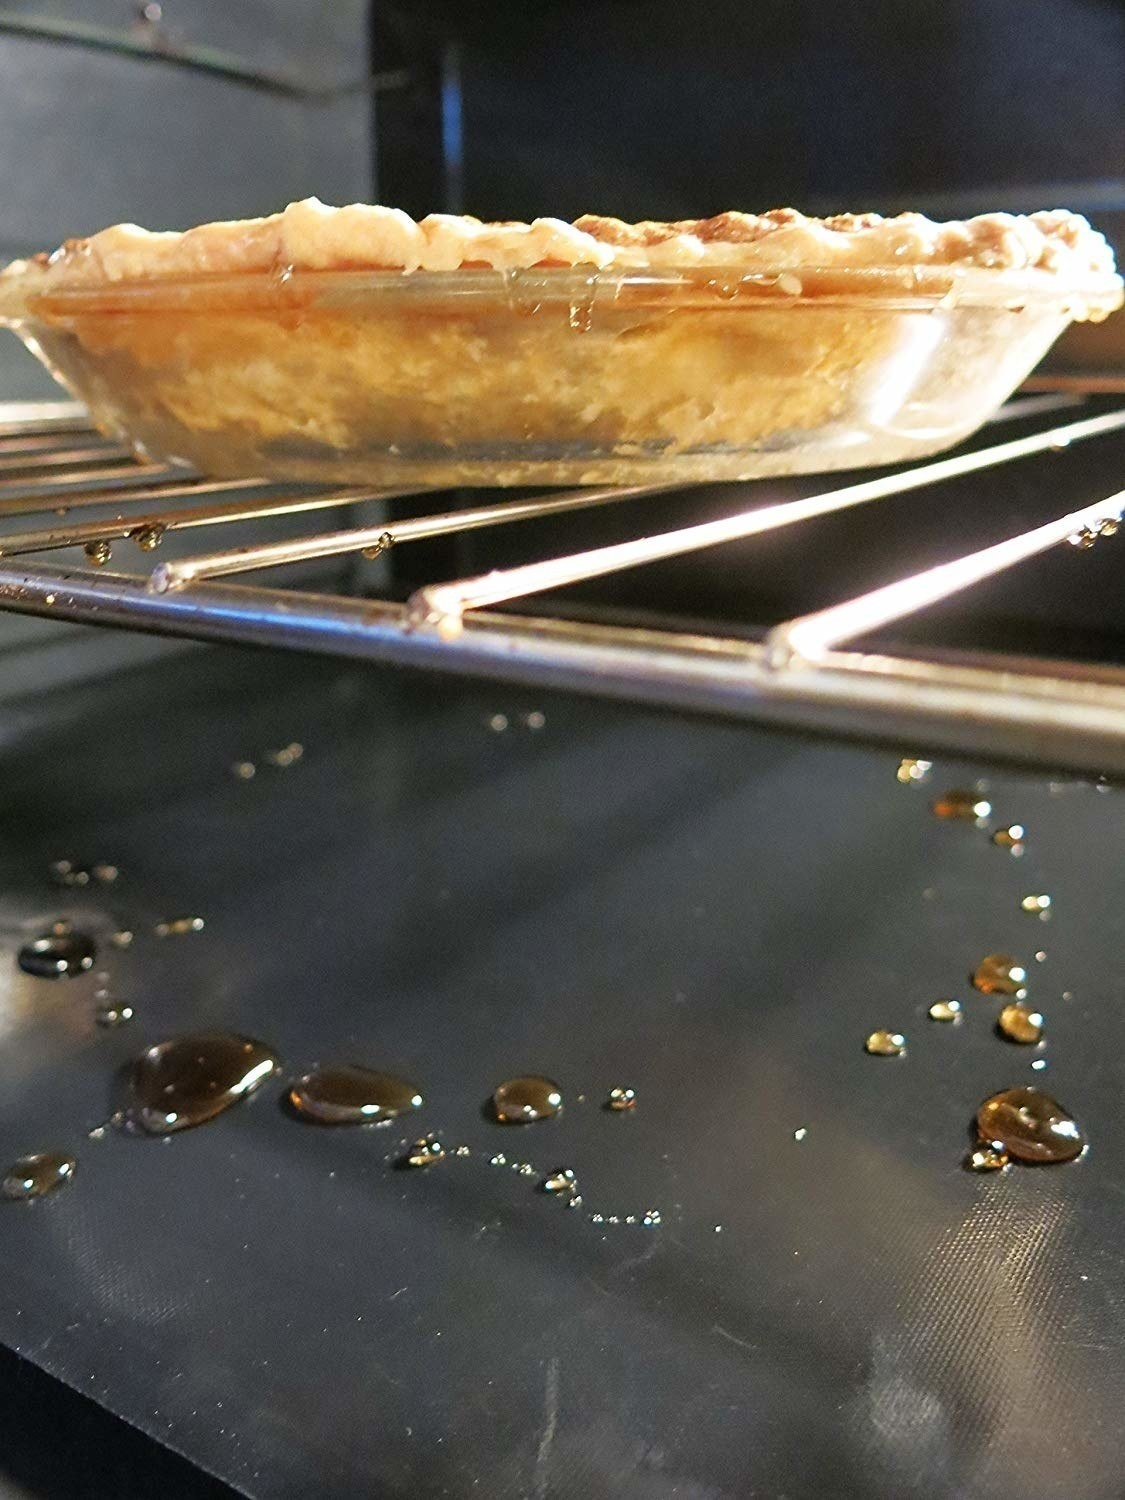 oven liner catching drips from pie inside oven